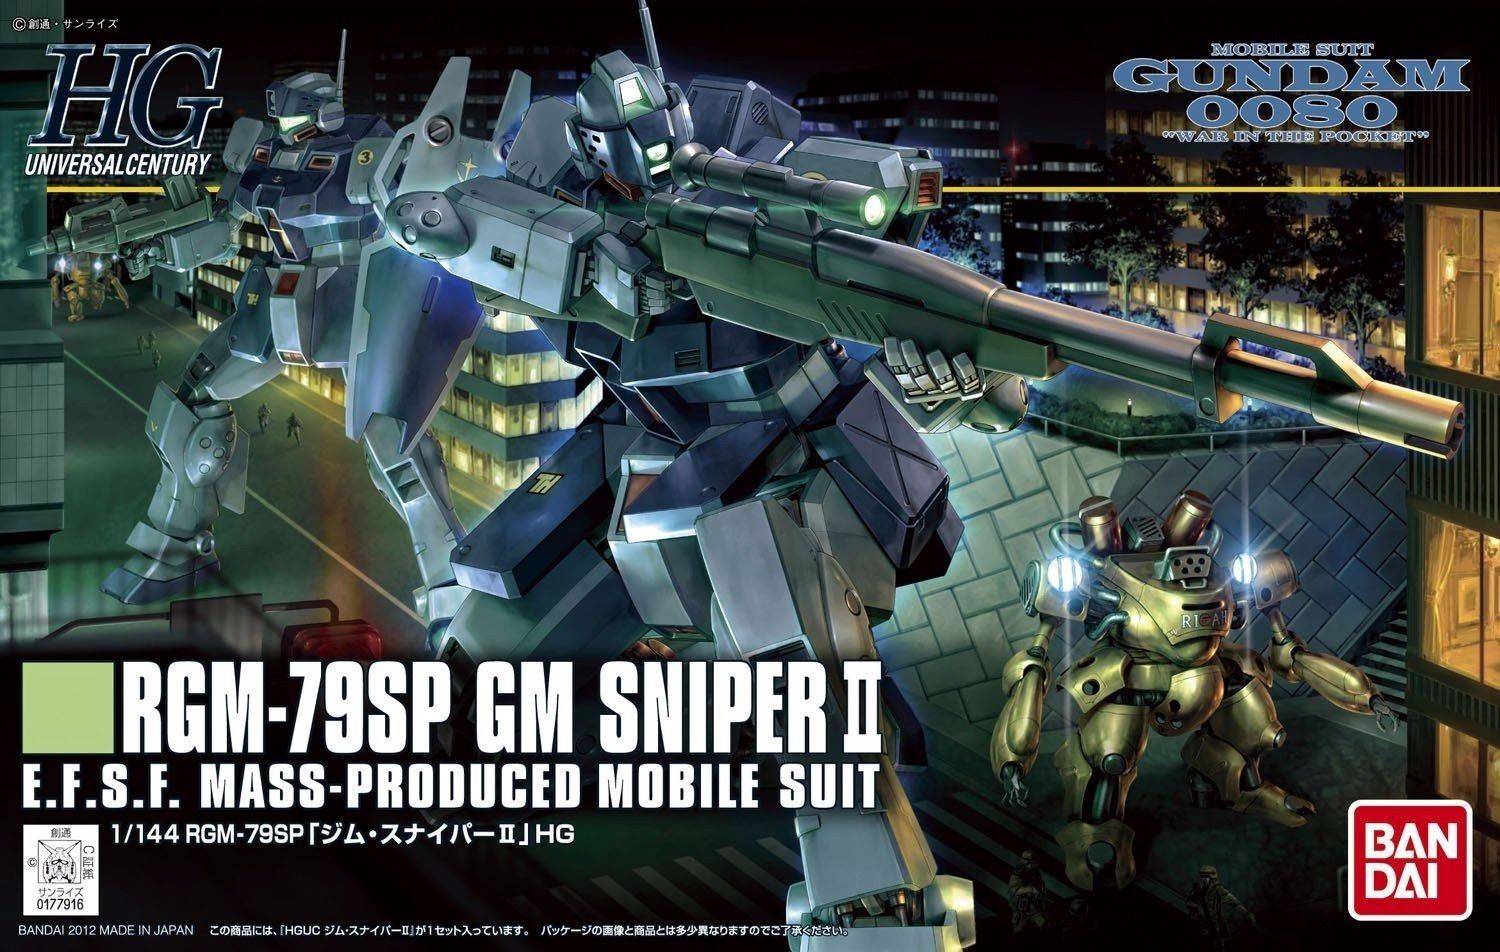 BANDAI HGUC 1/144 RGM-79SP GM SNIPER II Plastic Model Kit Gundam 0080 from Japan_1